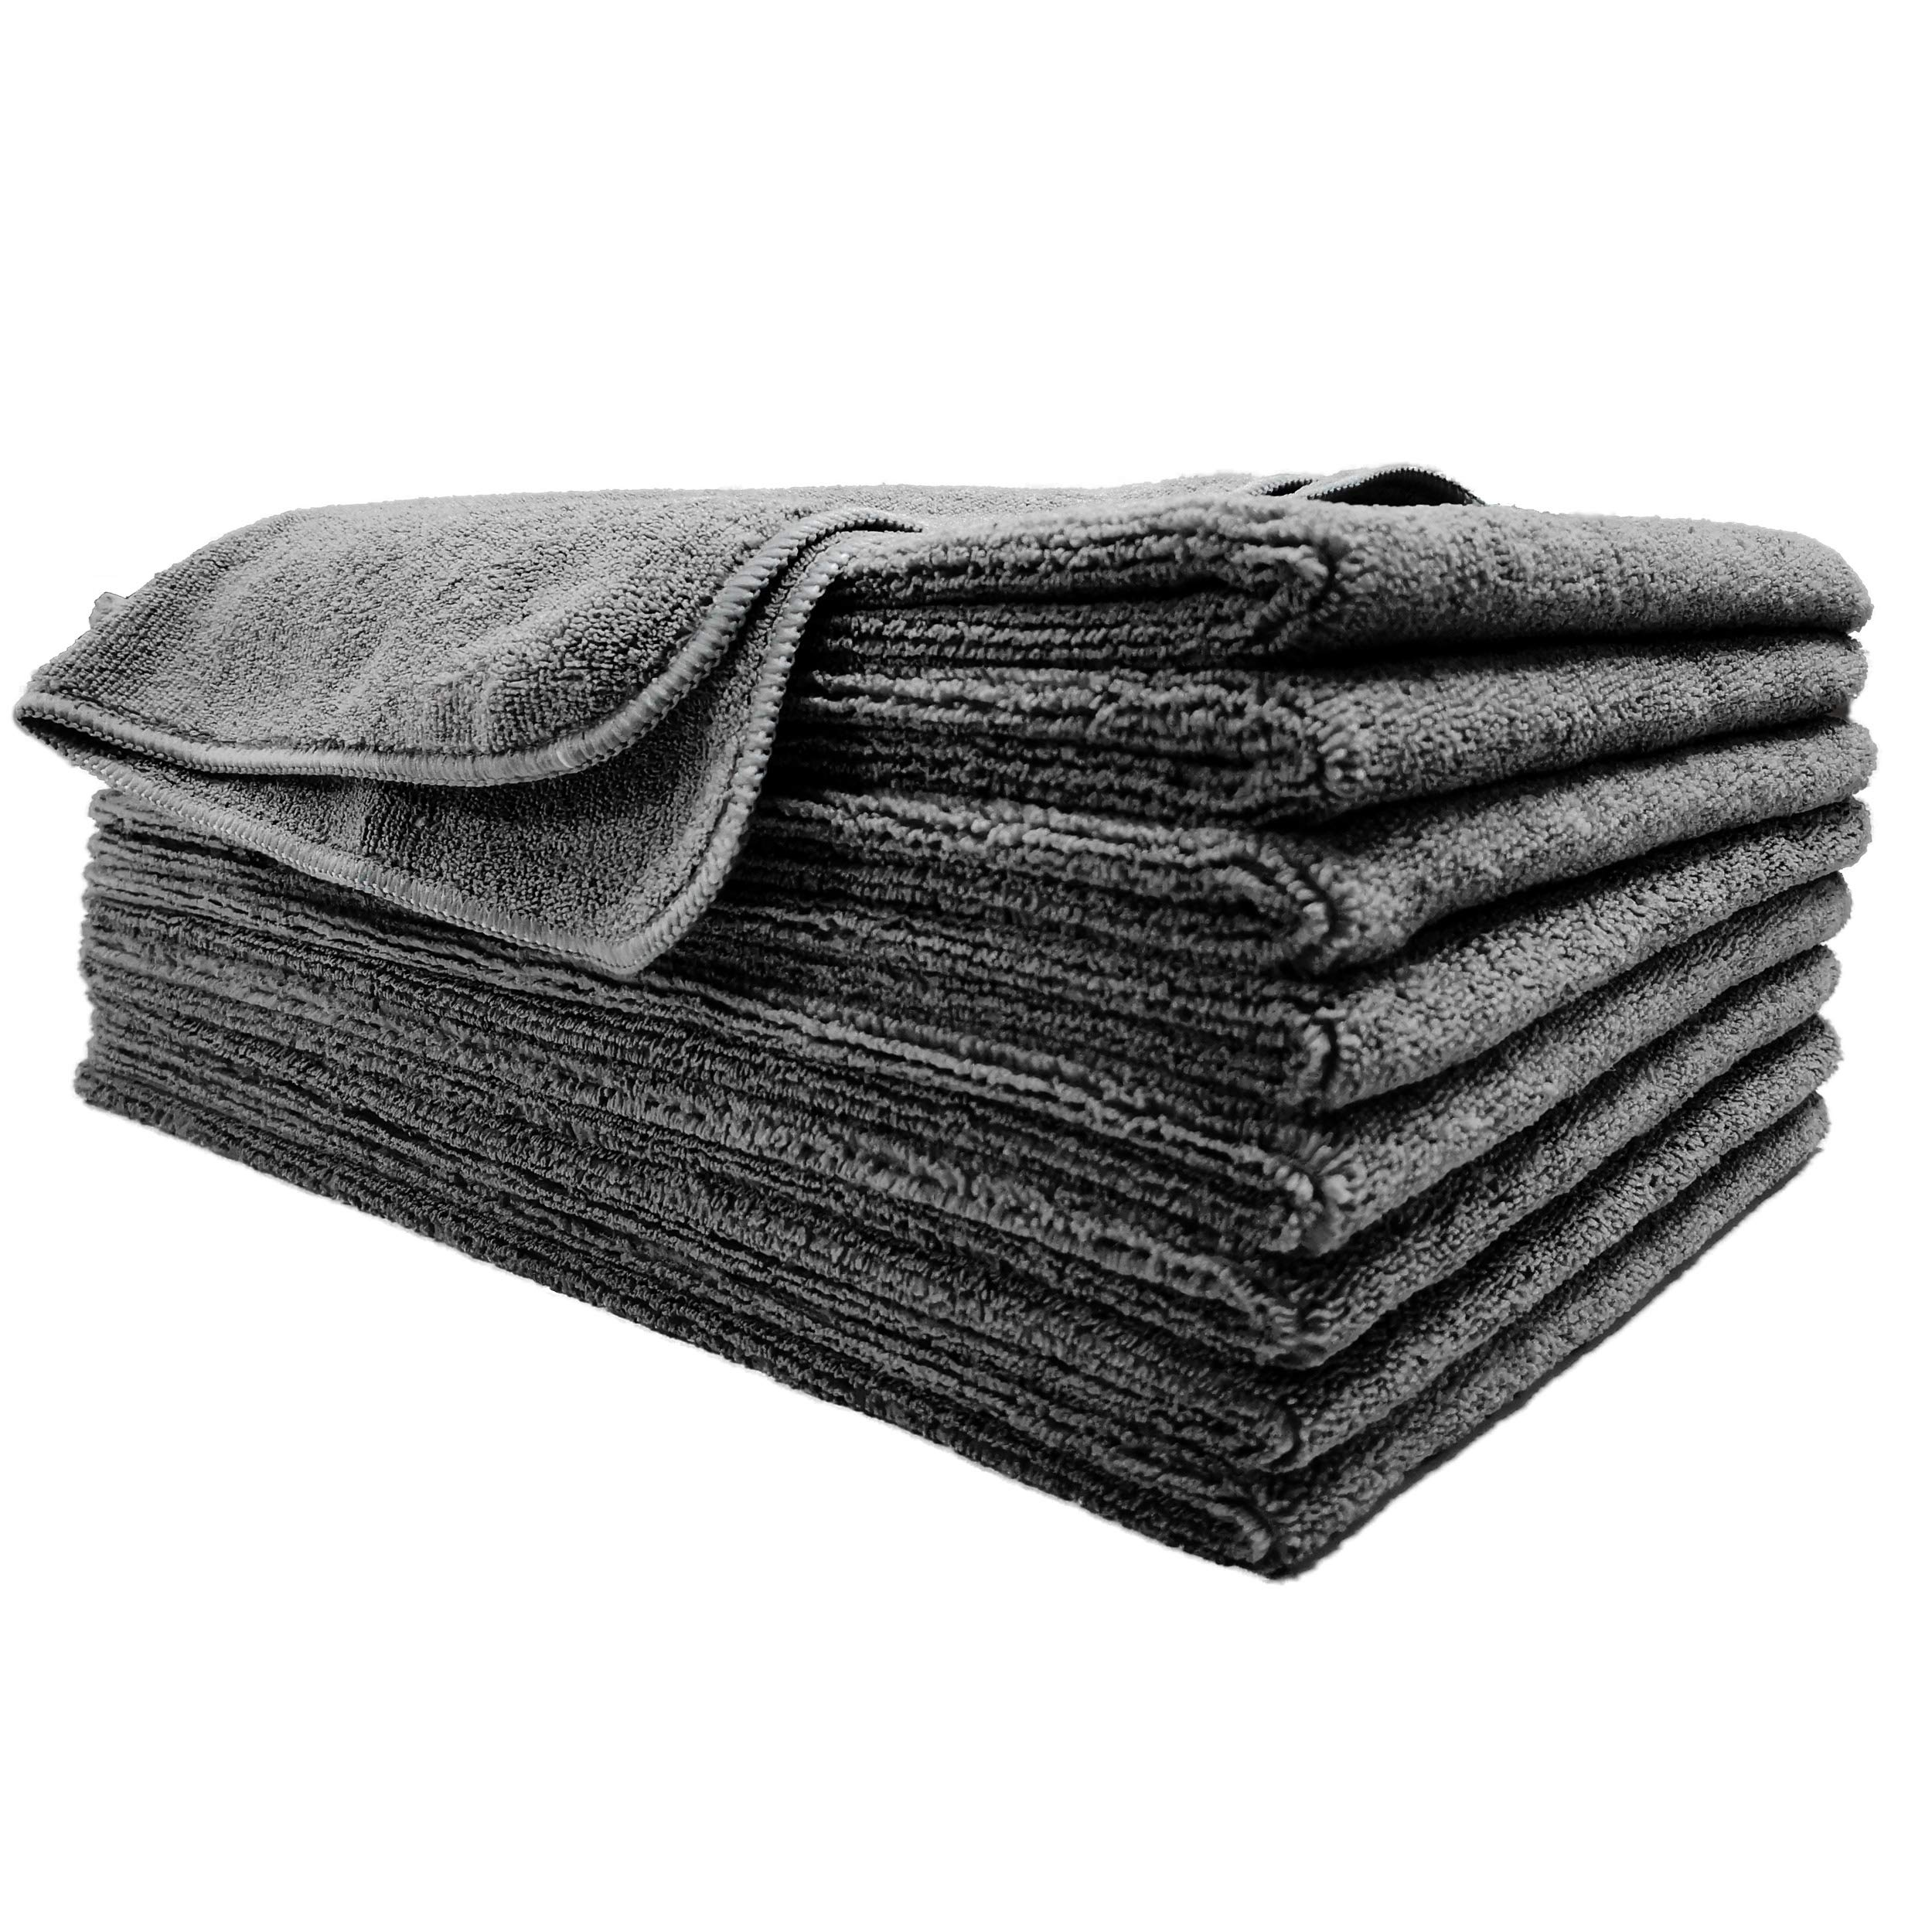 Polyte Professional Quick Dry Lint Free Microfiber Hair Drying Salon Towel, 8 Pack (16x29, Dark Gray) by Polyte